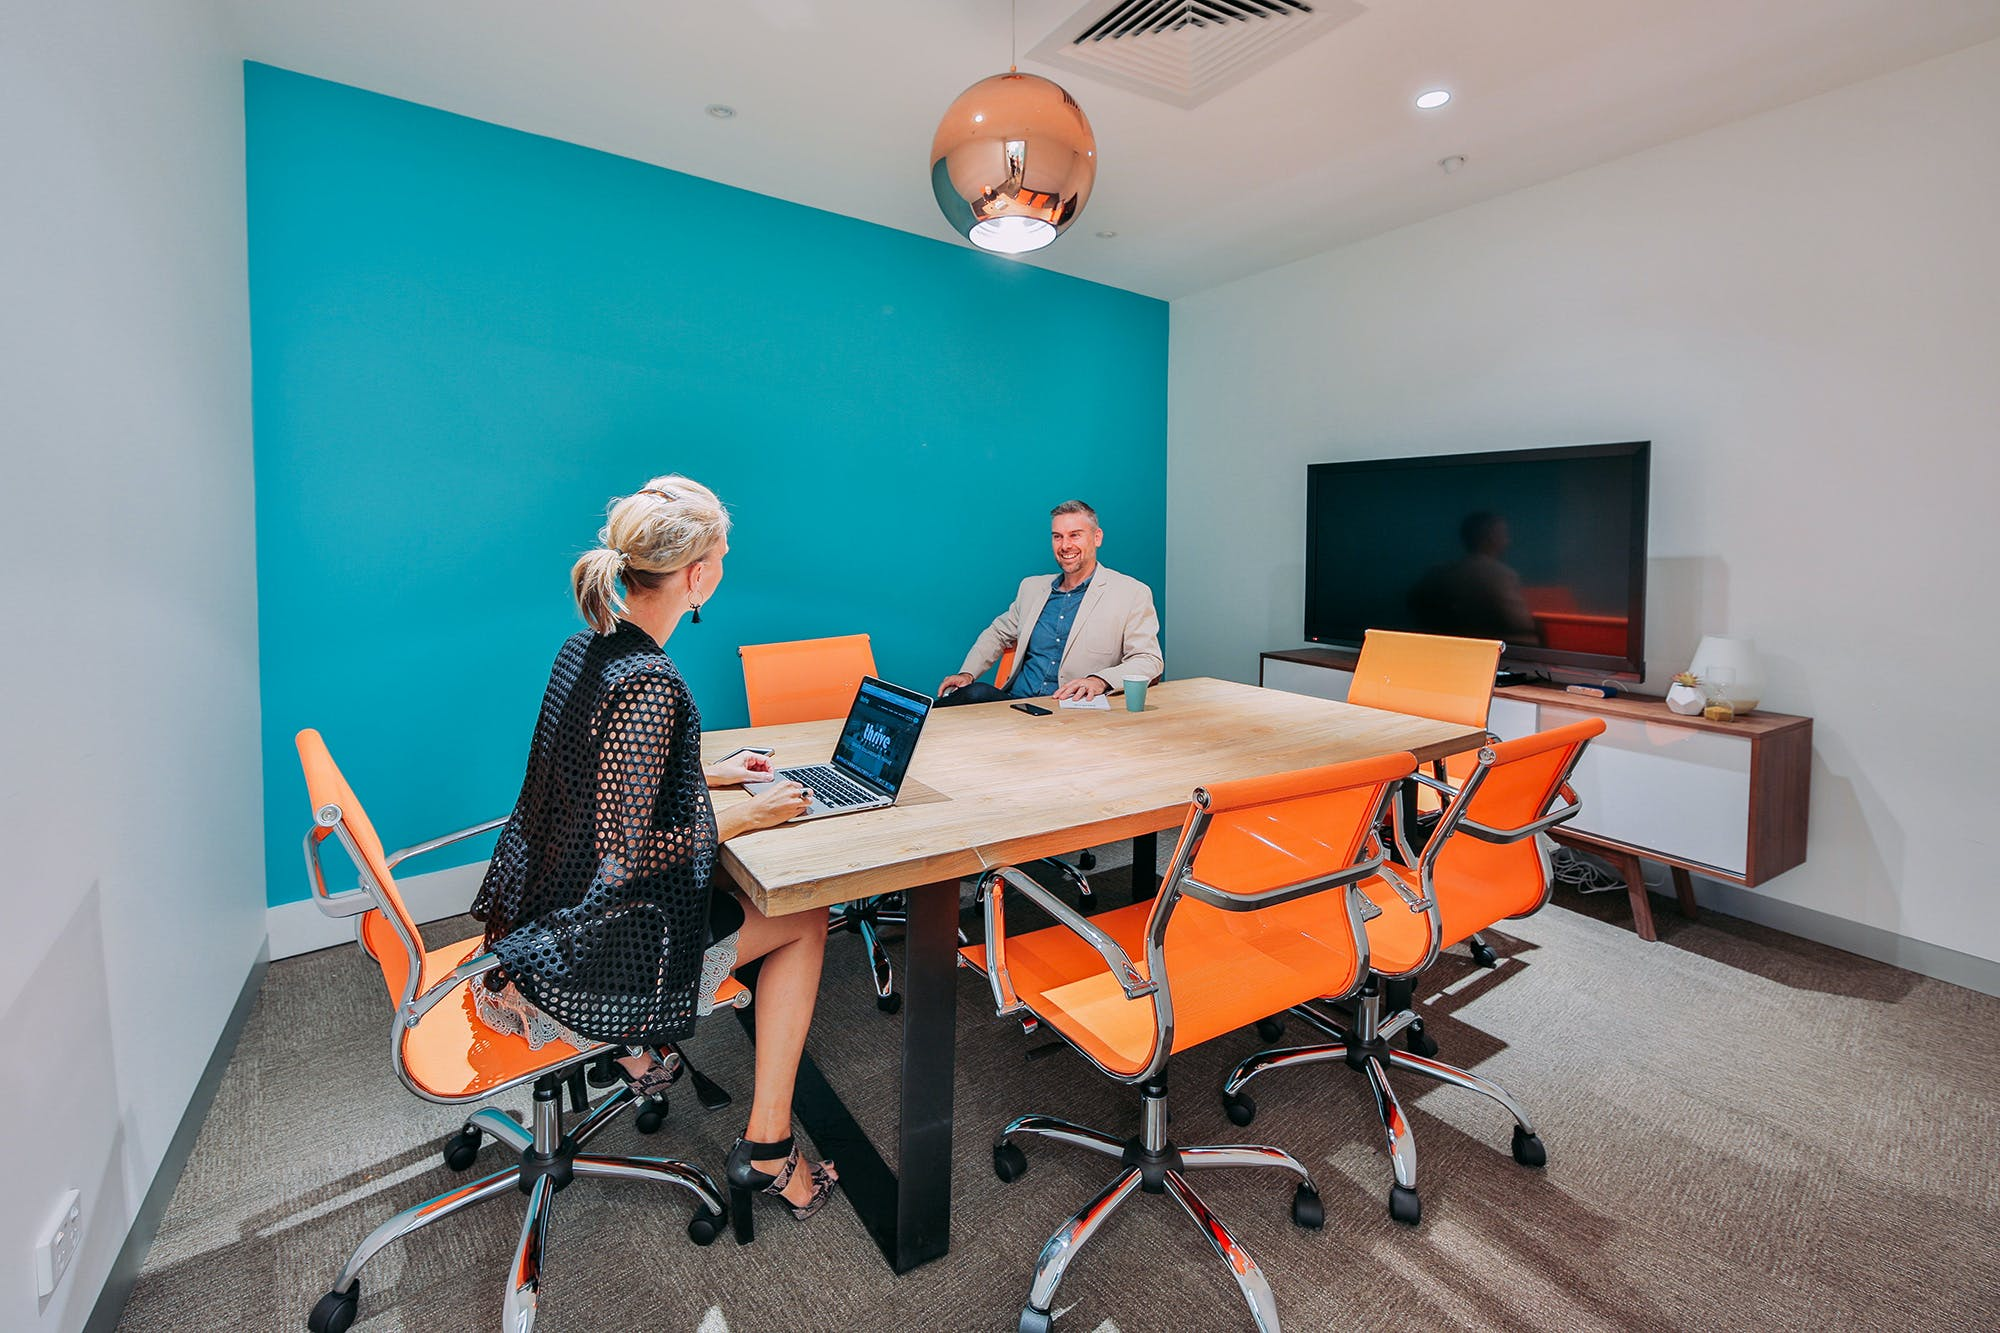 The Jet Li, meeting room at The Thrive Network, image 1